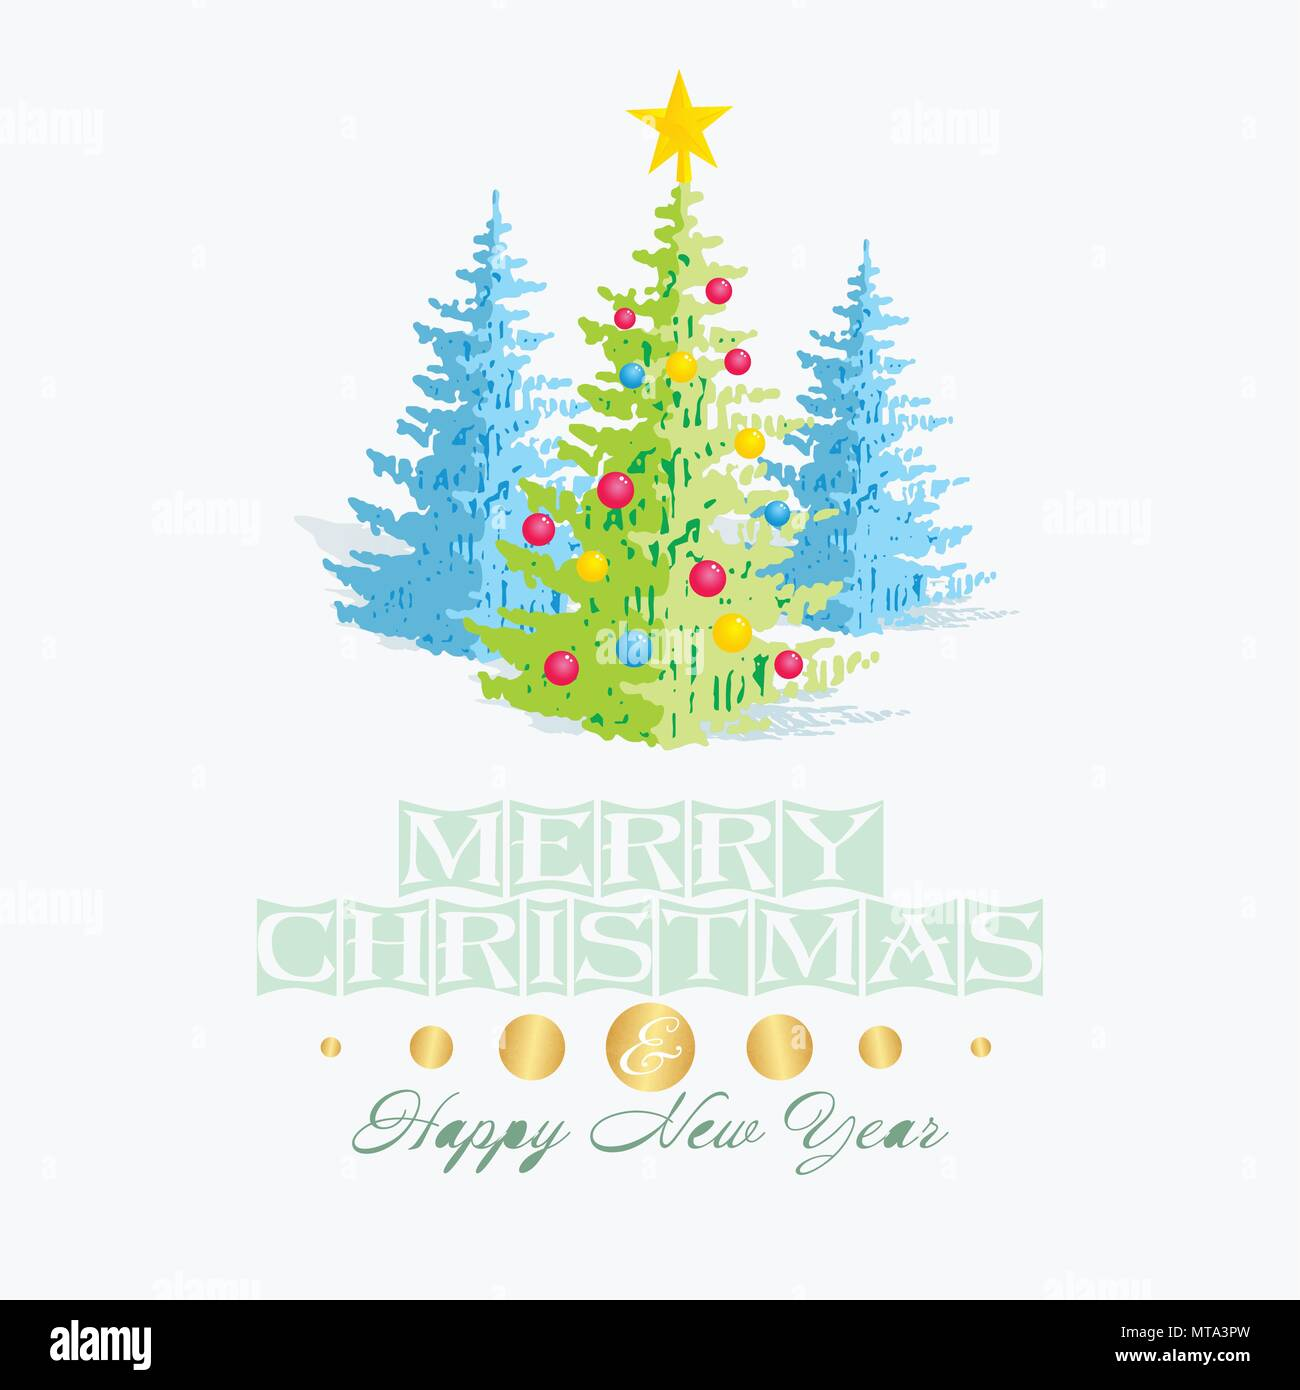 christmas card template with green and blue christmas tree decorations and star